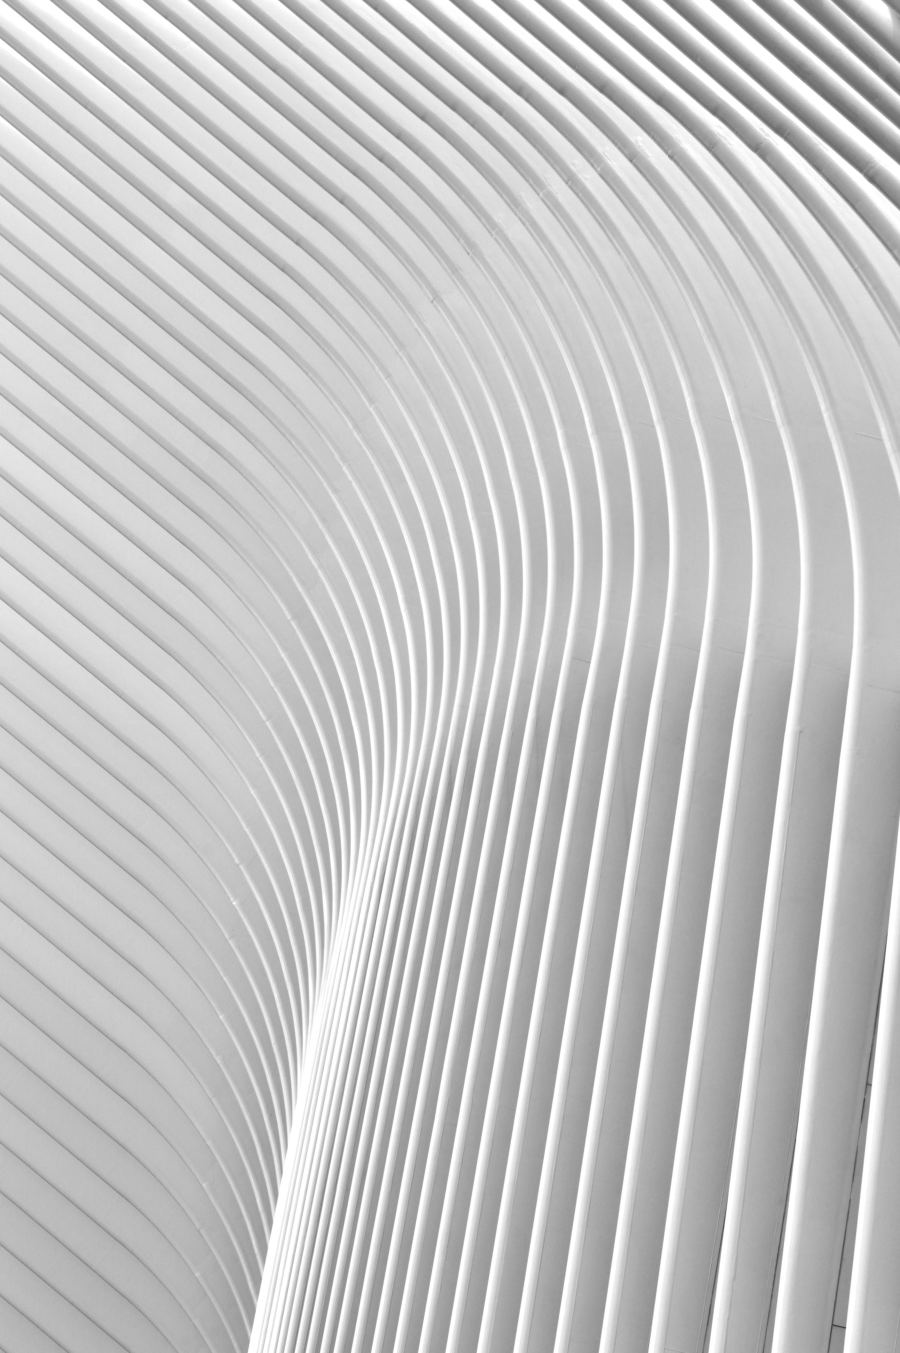 Oculus - New York, USA